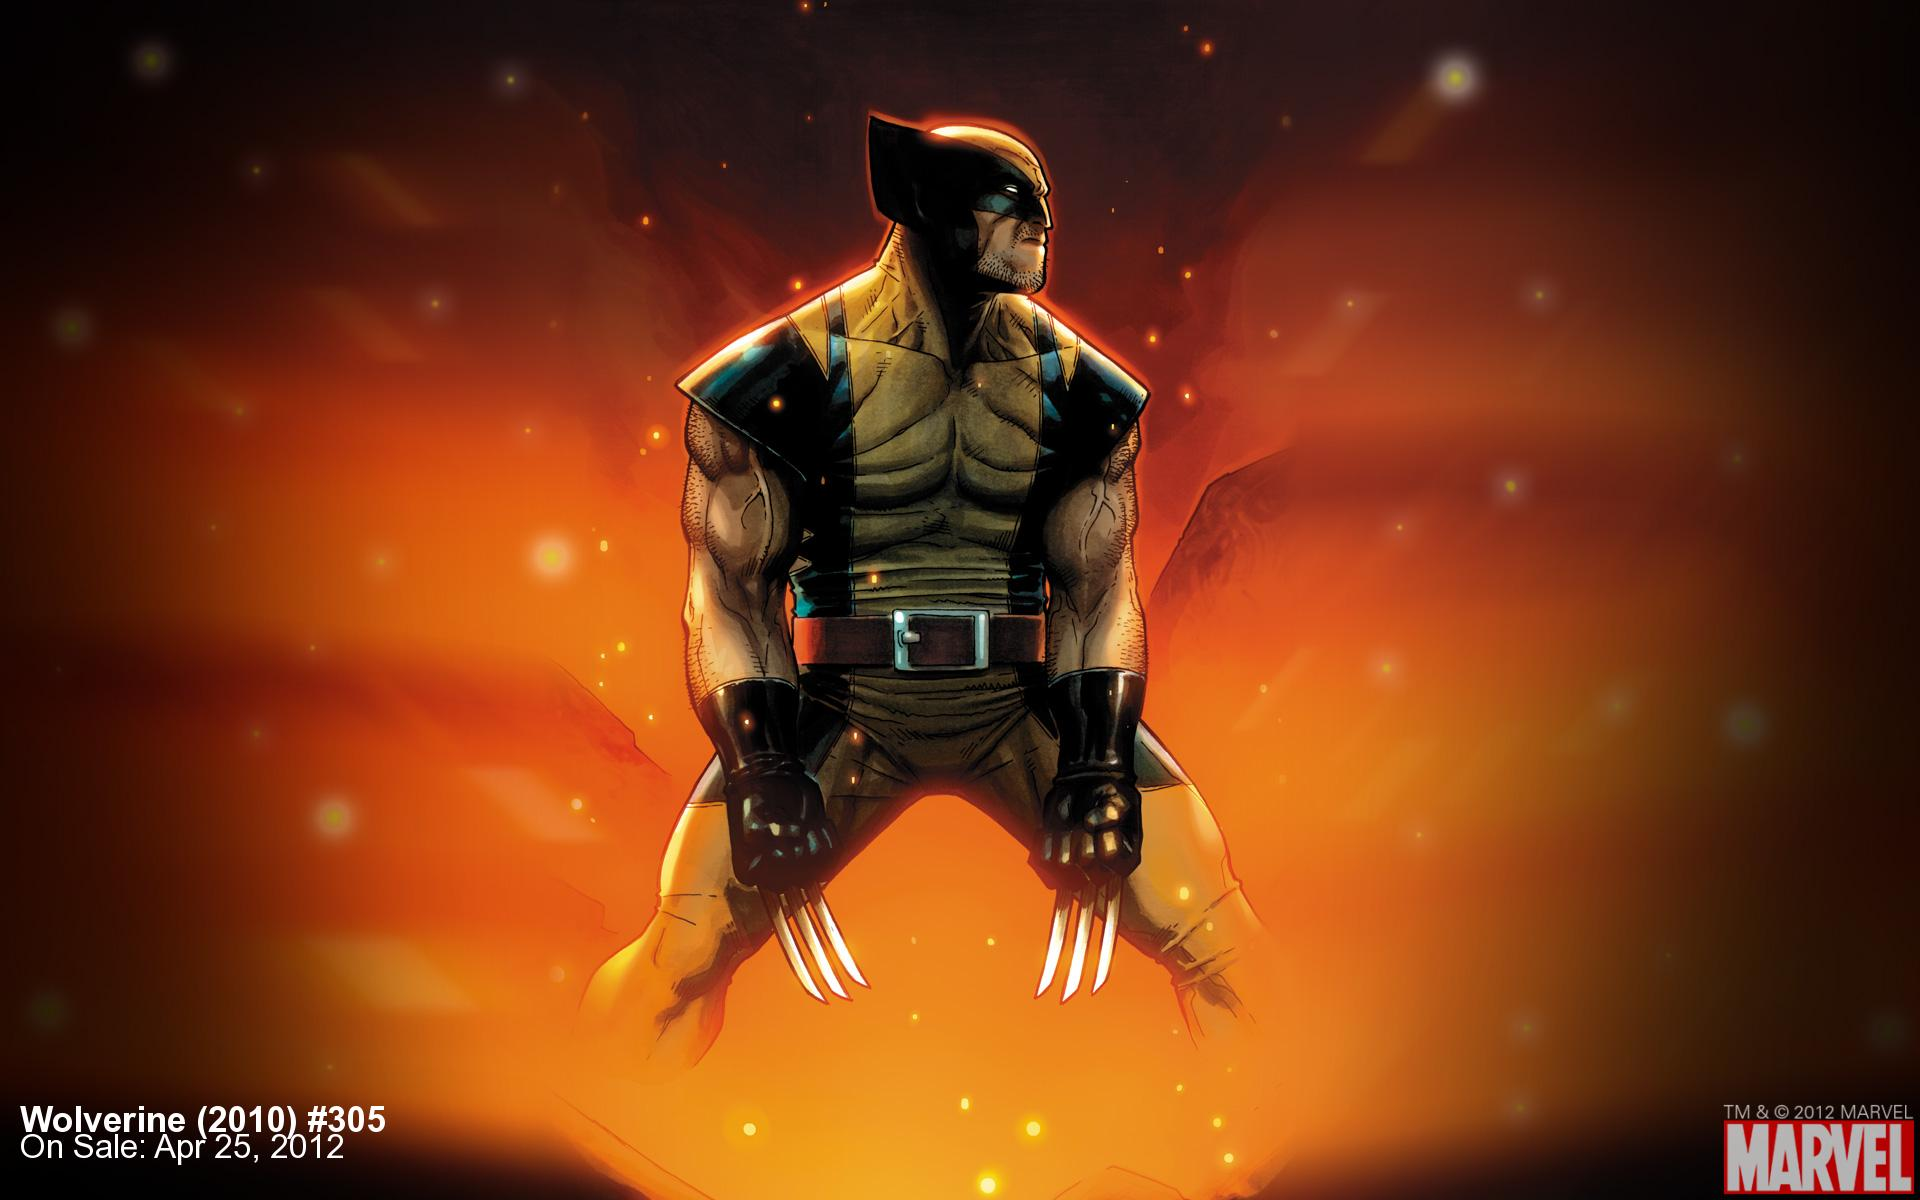 Must see Wallpaper Marvel Wolverine - wallpaper_widescreen  Graphic_491371.jpg